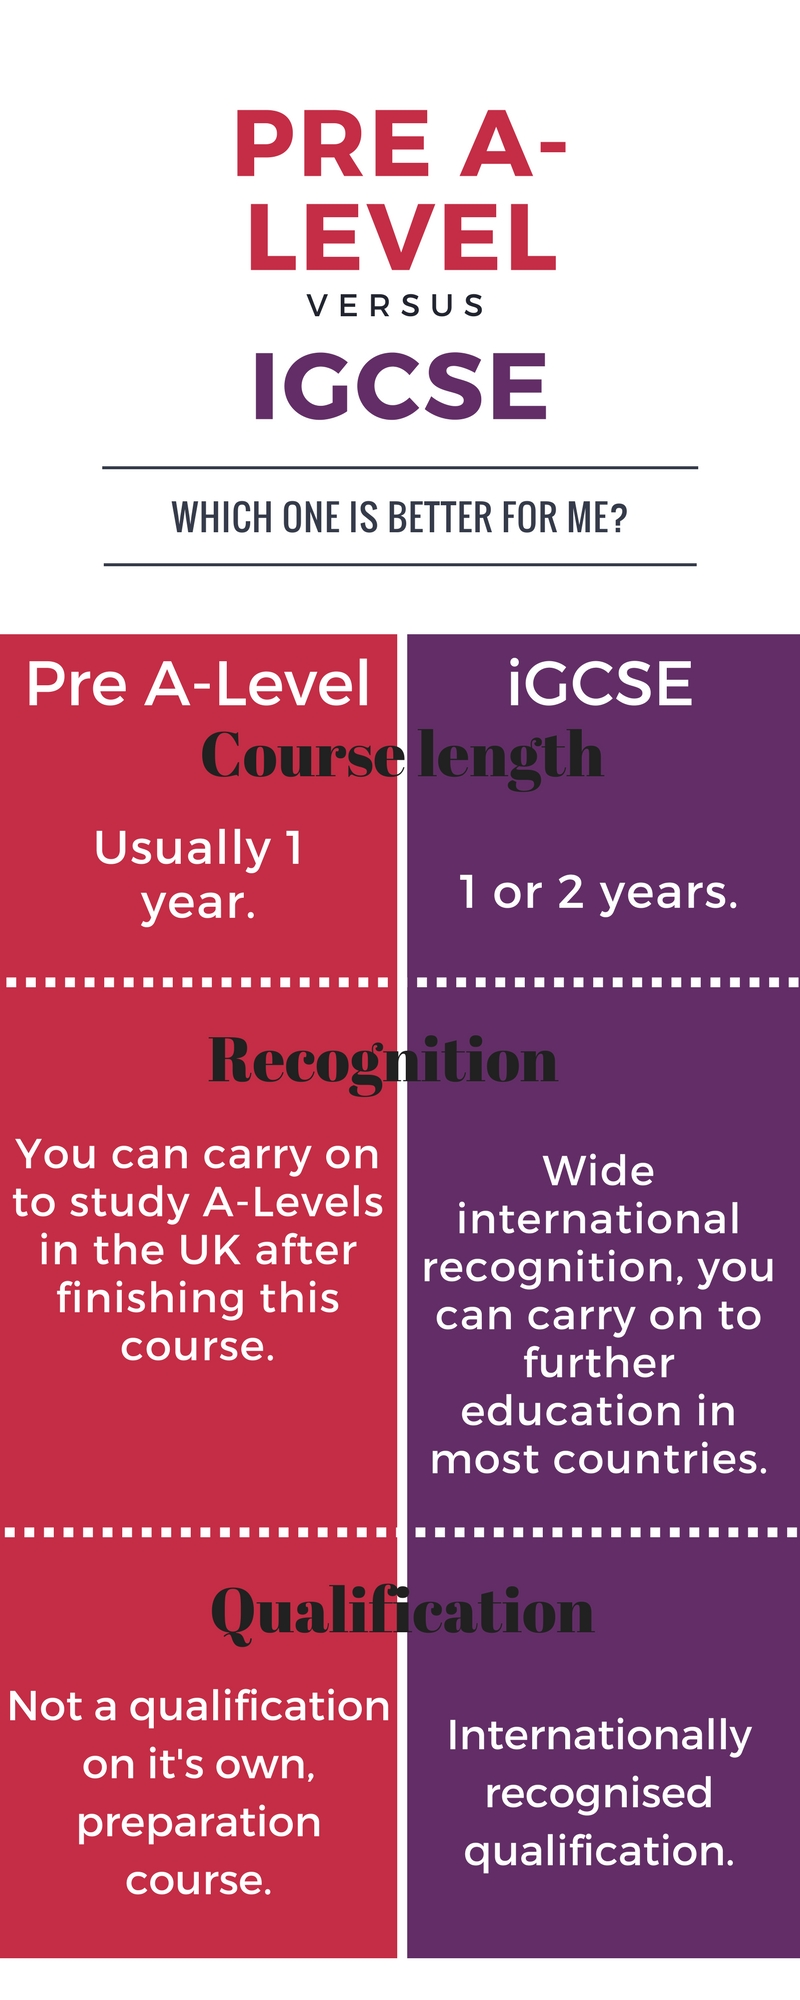 iGCSE or Pre A-level